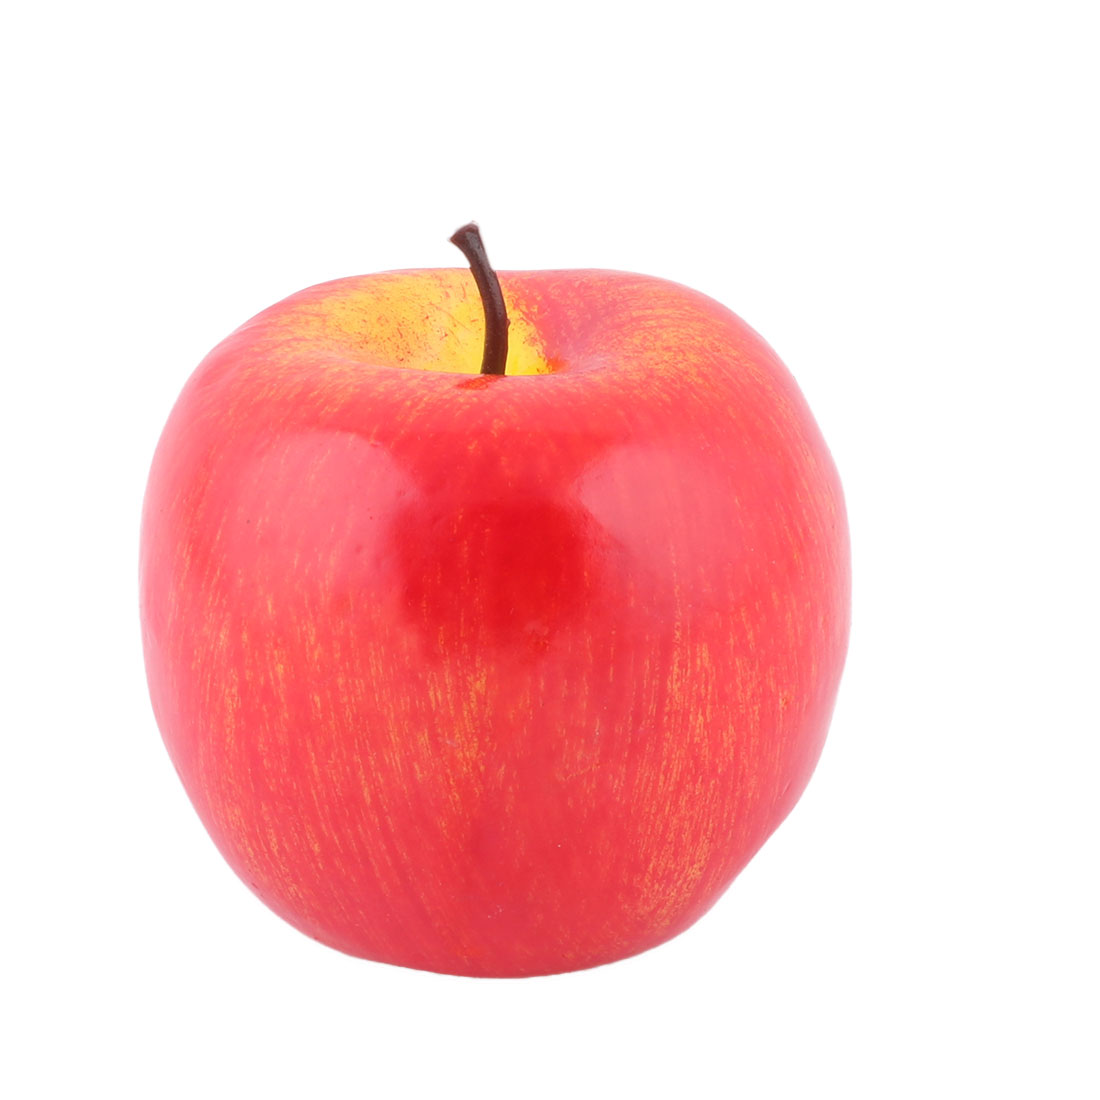 House Table Decor Foam Artificial Apple Designed Simulation Fruit Photo Prop Red